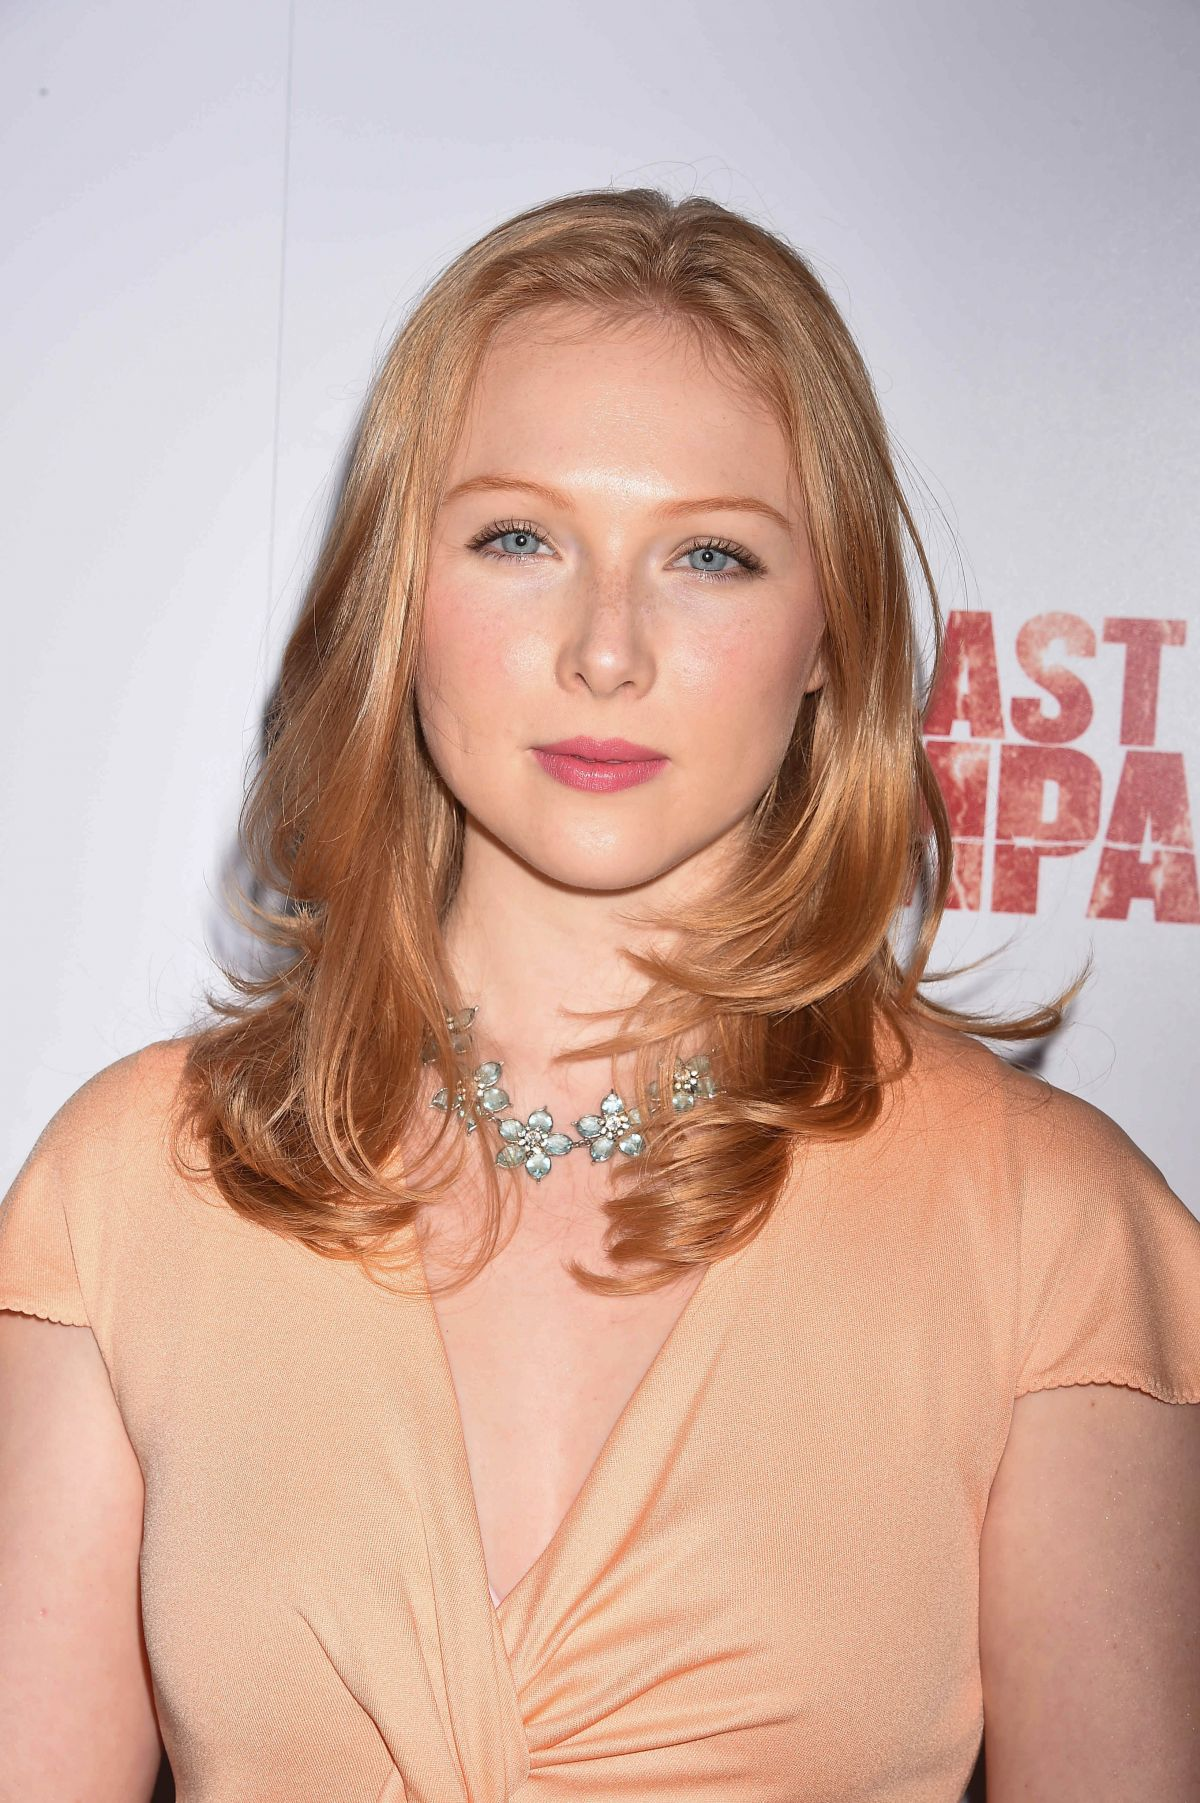 Hacked Molly Quinn nudes (73 photos), Sexy, Fappening, Twitter, butt 2015